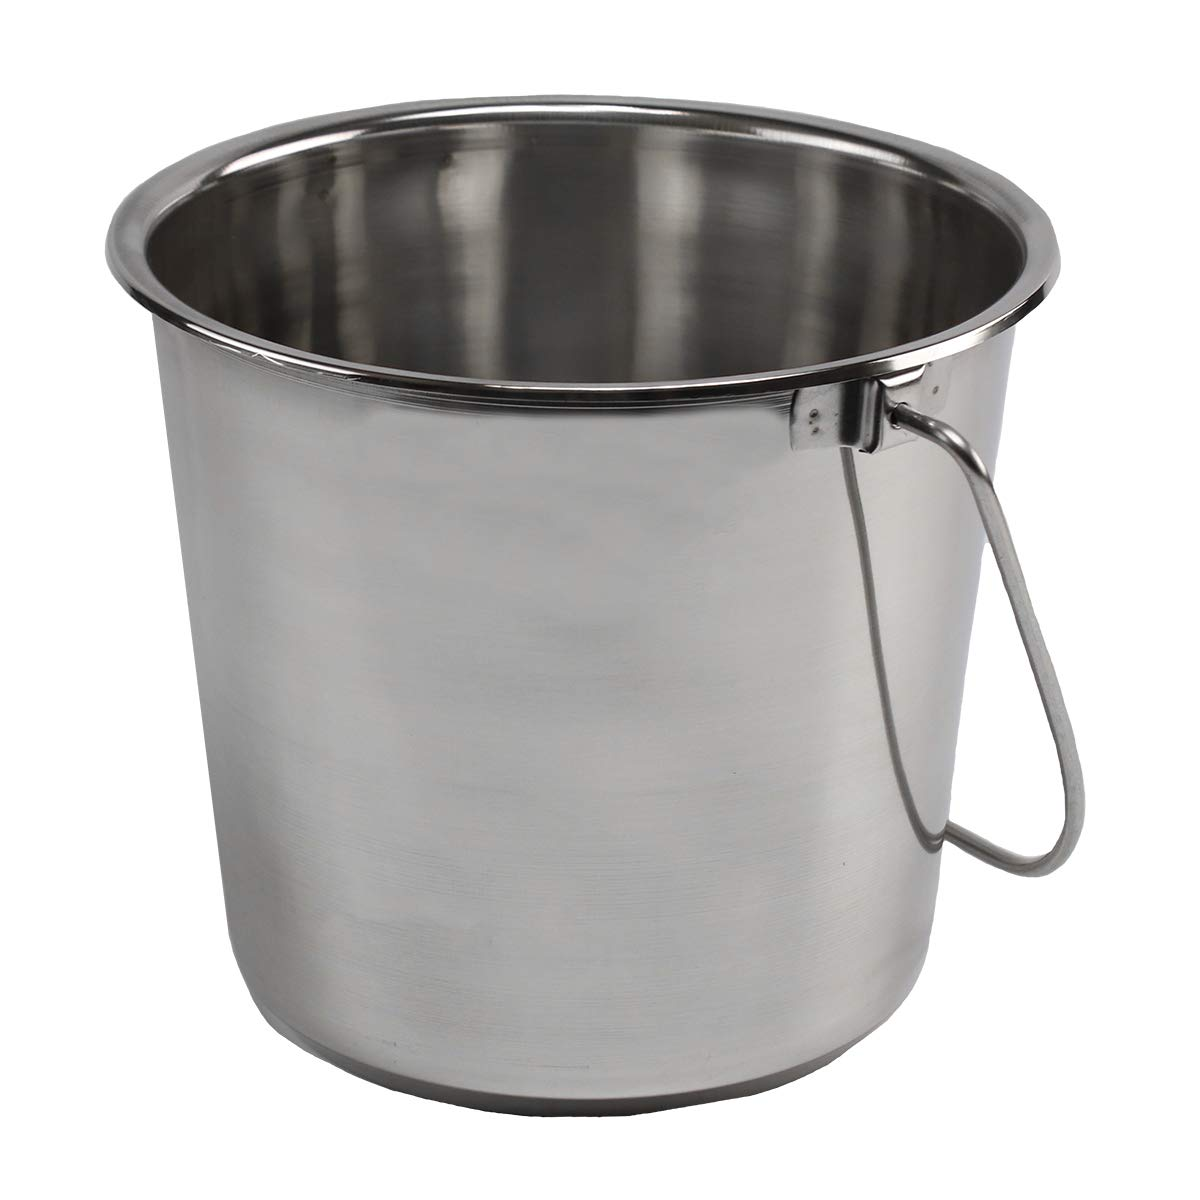 Stainless Steel Buckets for Pets, Cleaning, Food Prep (4 Gallon)